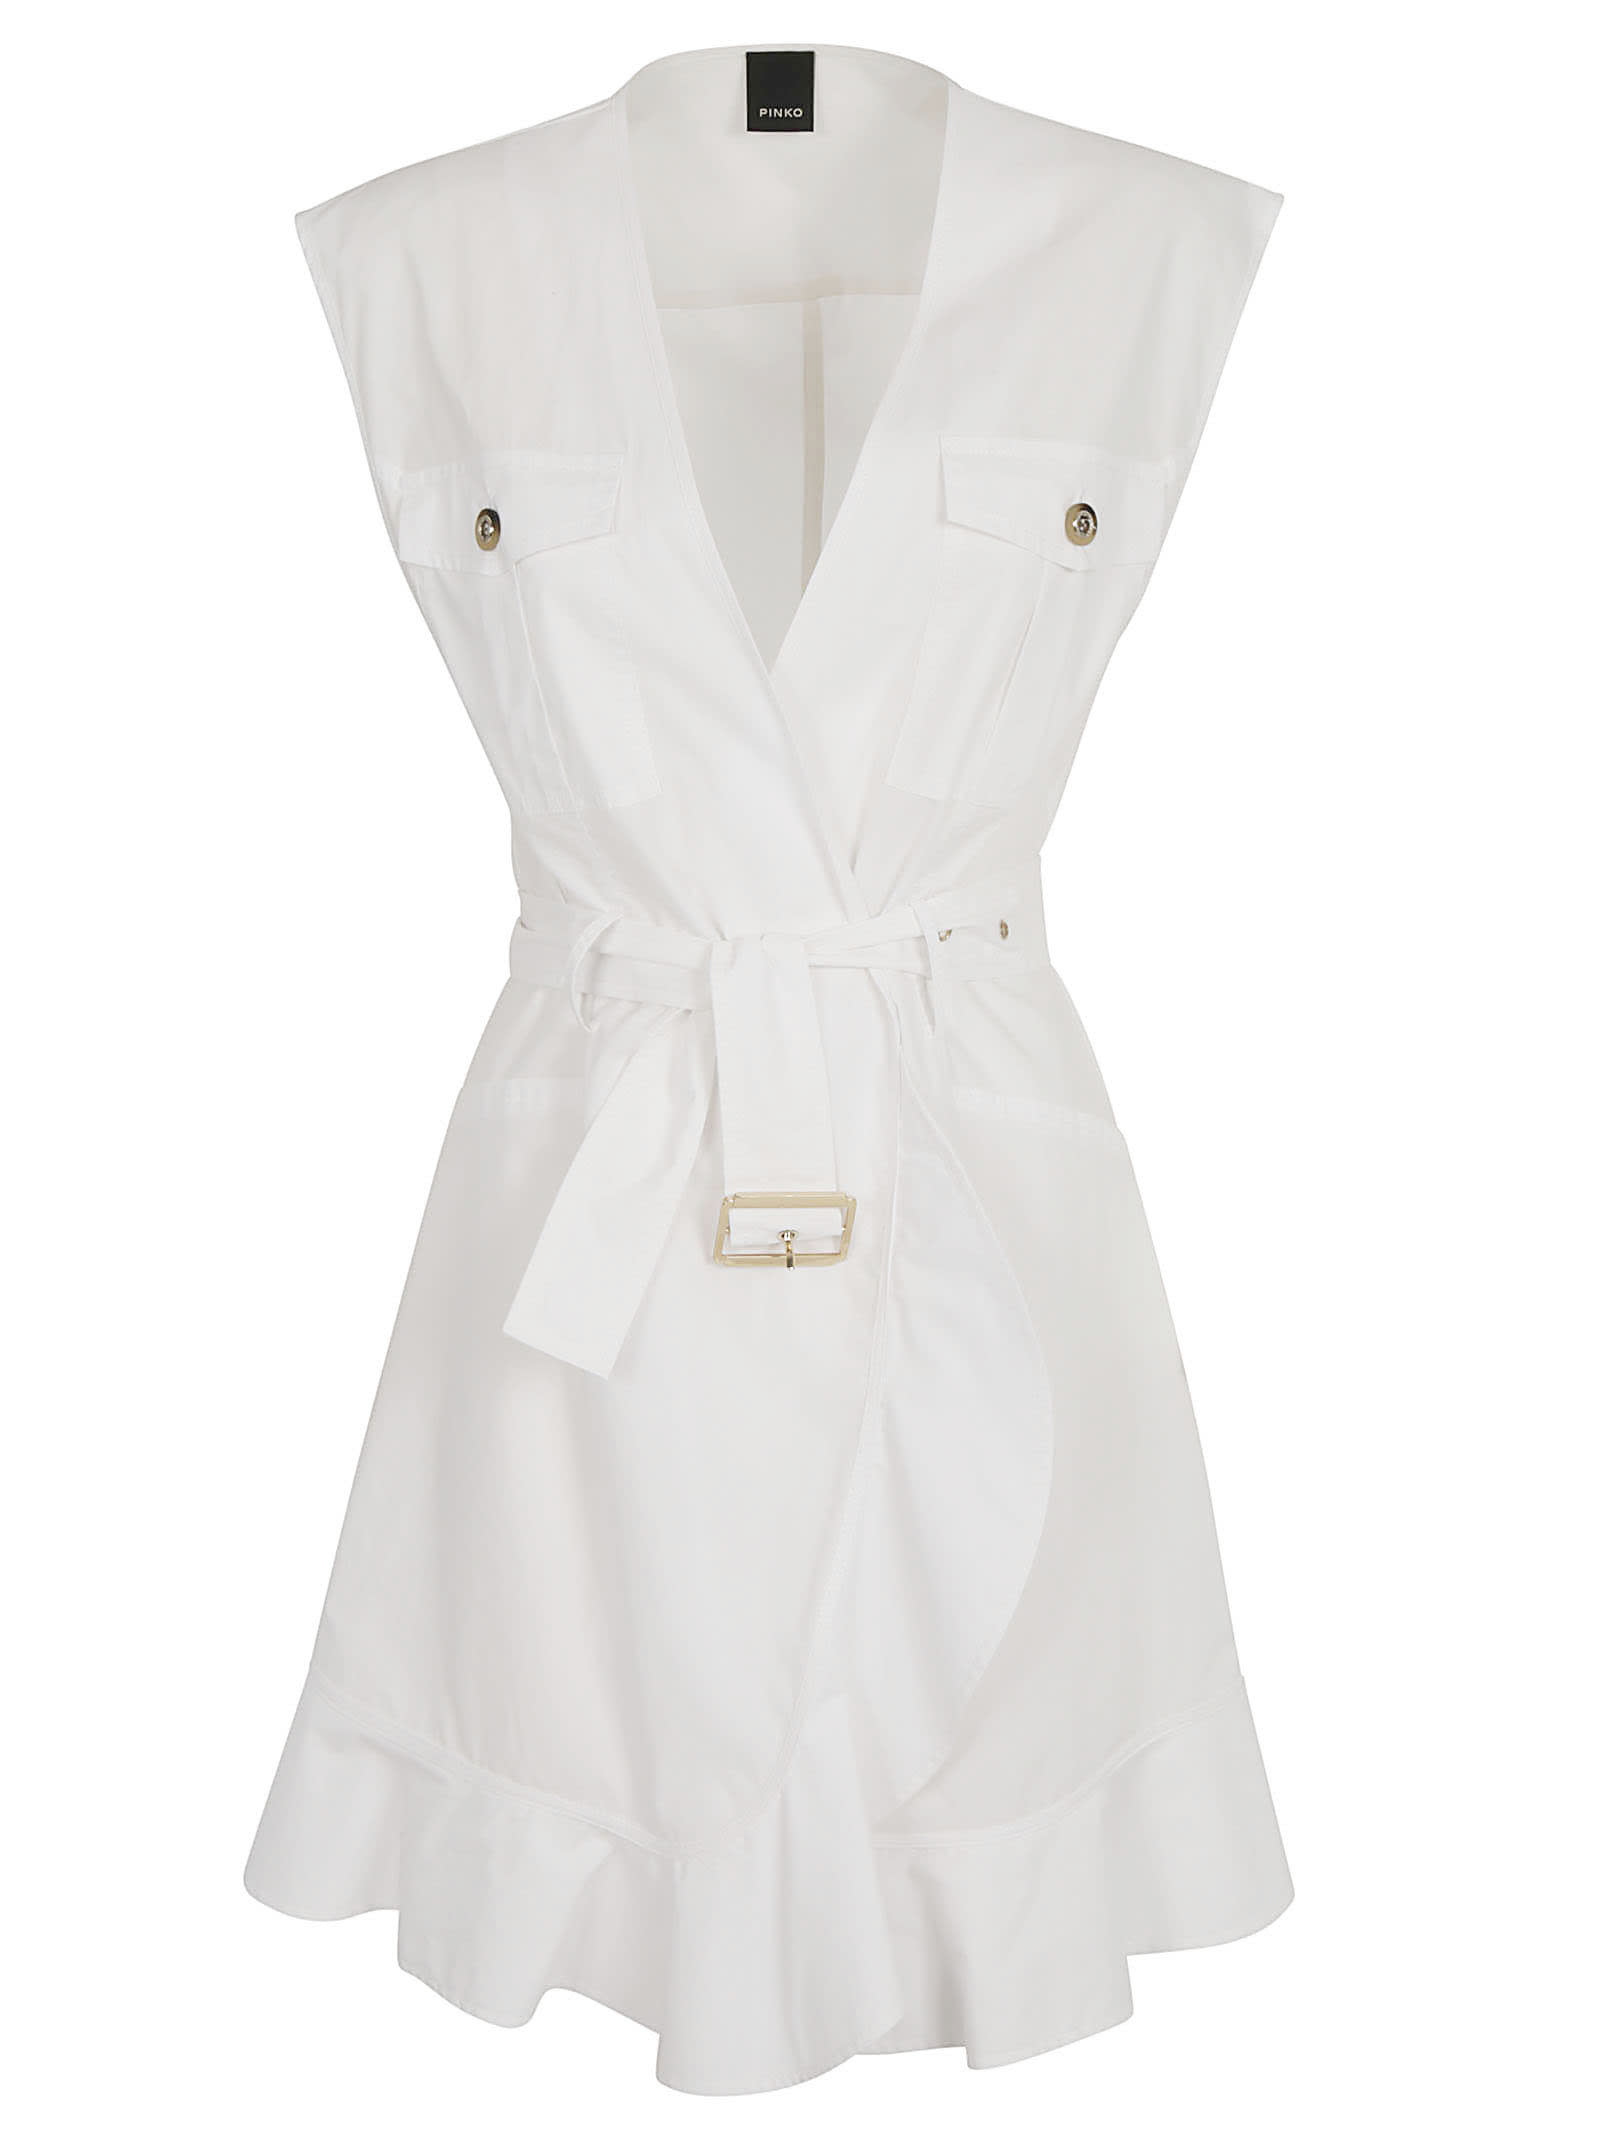 Buy Pinko Popeline Belted Sleeveless Dress online, shop Pinko with free shipping